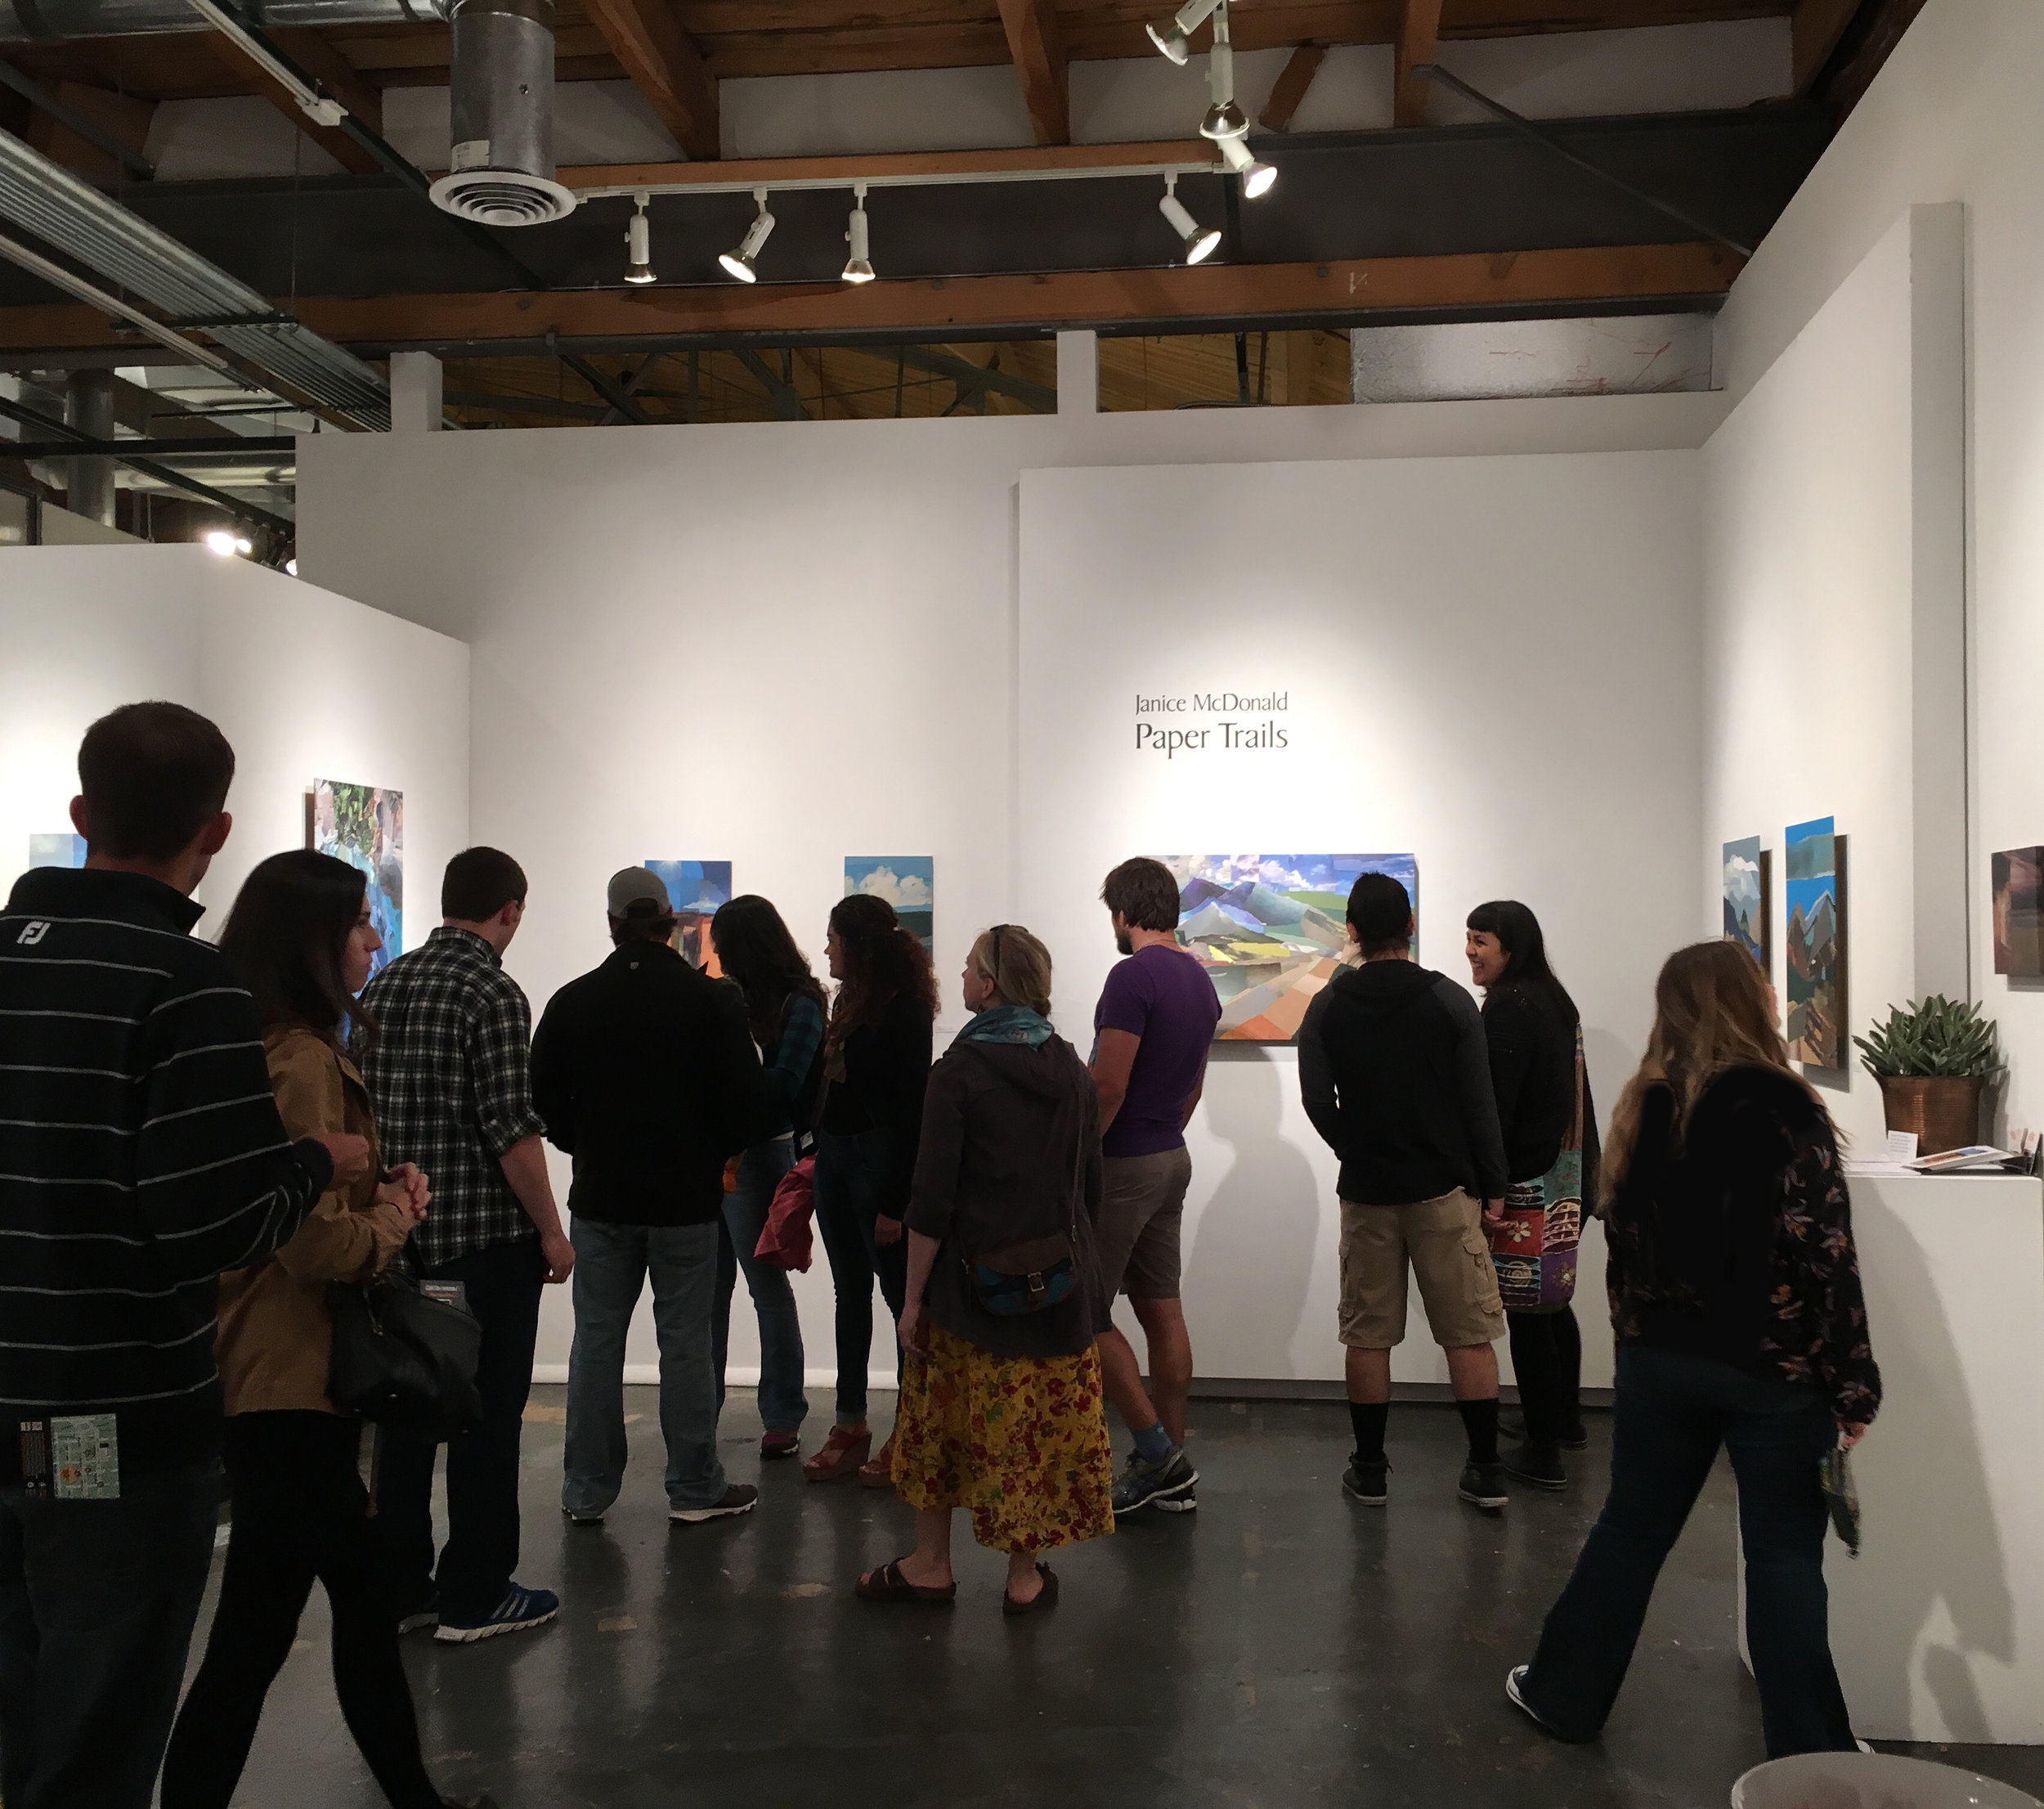 First Friday in October 2015 at Paper Trails exhibition, Spark Gallery, Denver.